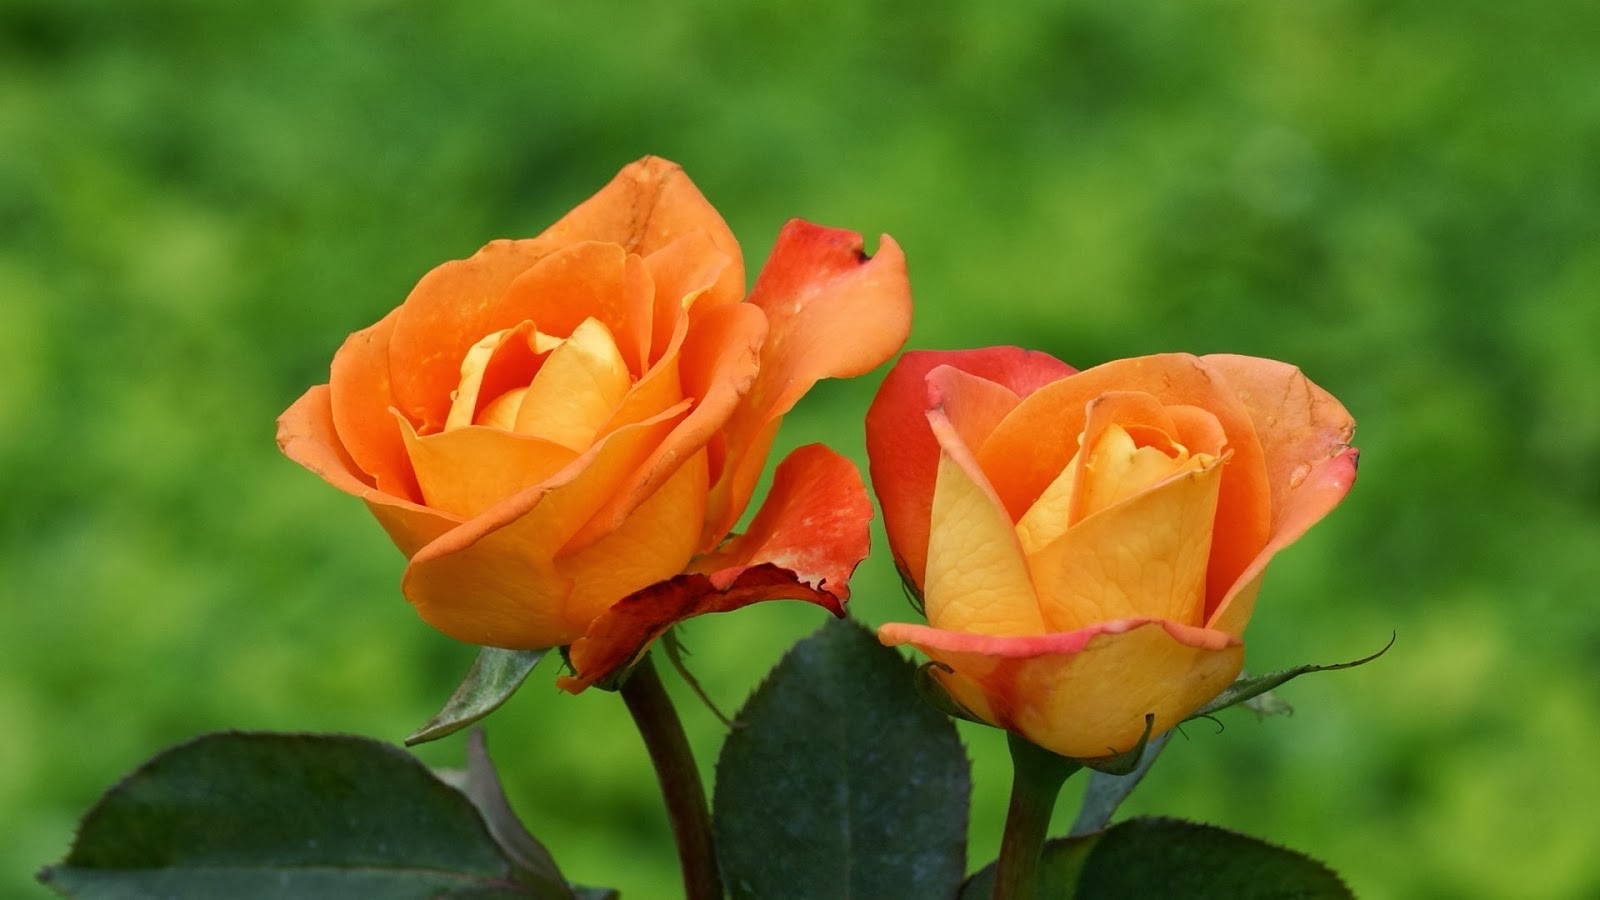 Free Cute Wallpapers For Android Orange Rose Flowers Wallpapers Beautiful Flowers Wallpapers